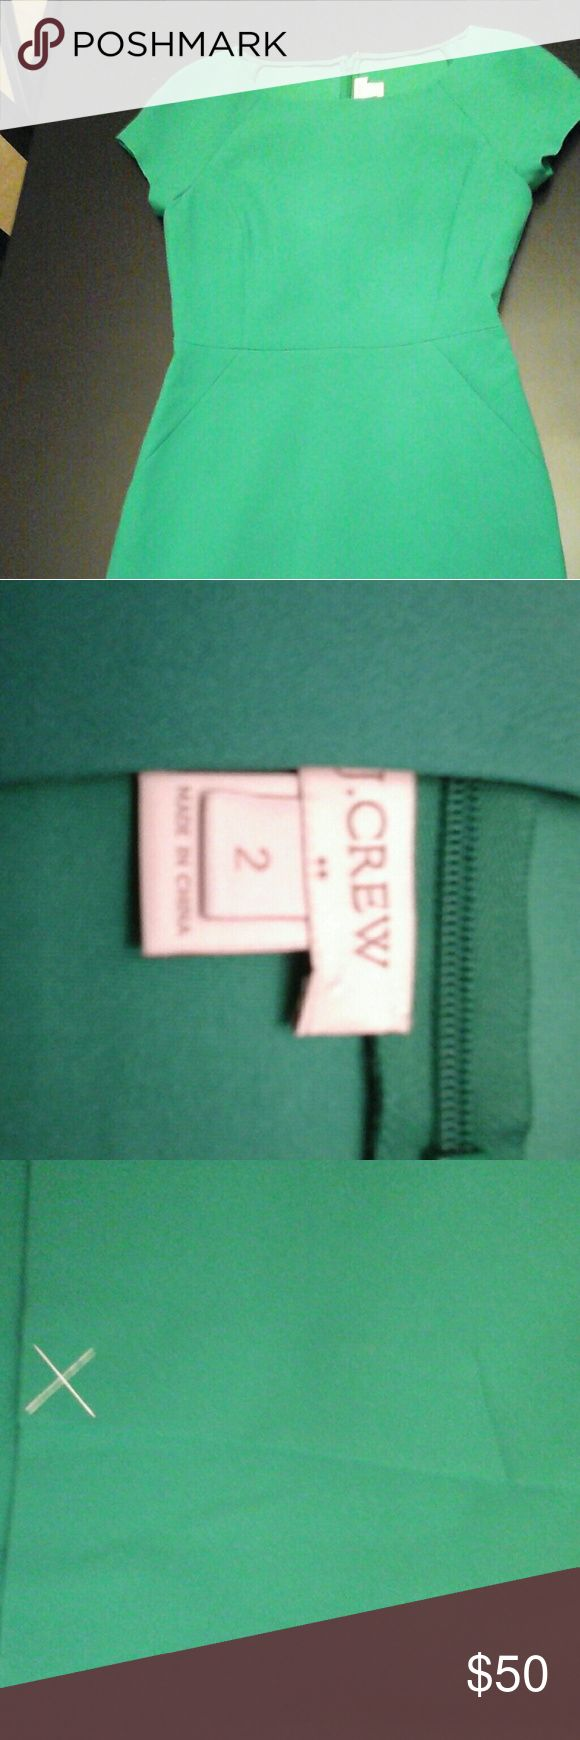 J. Crew Kelly Green Dress sz 2 NWOT This beautiful green dress is new without tags.  Stitching still in slit where this has never been worn. J. Crew Dresses Midi